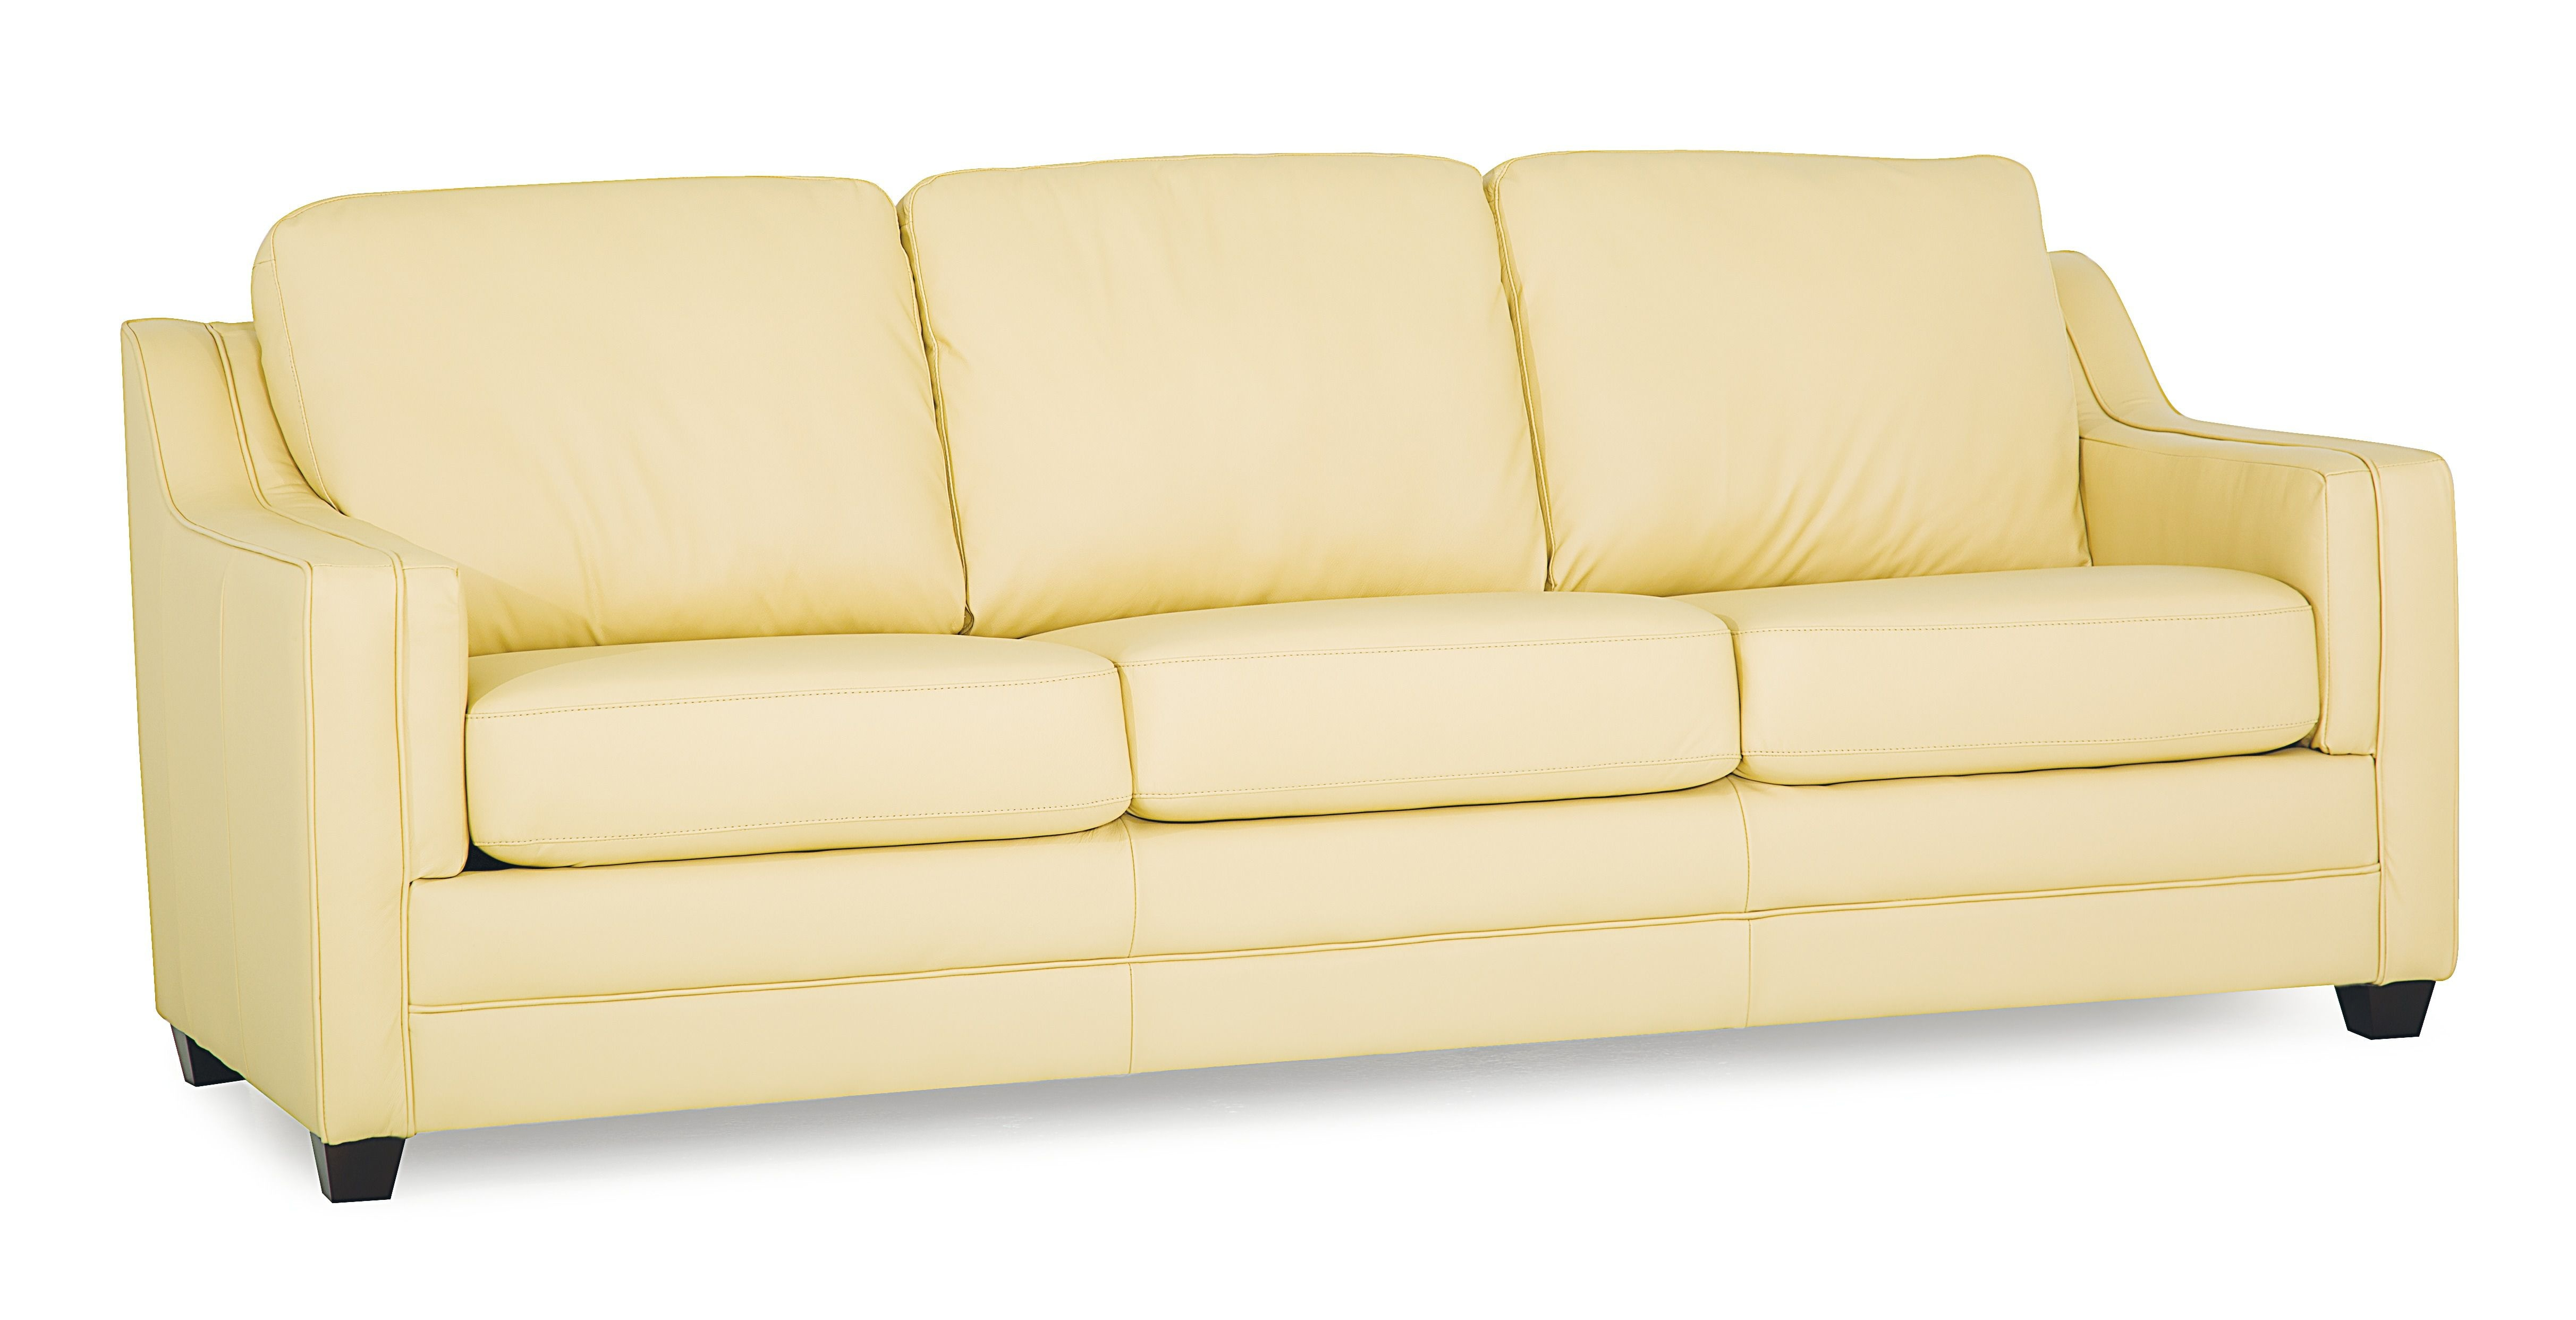 sofa store towson md pee sectional palliser furniture living room 77500 01 the at